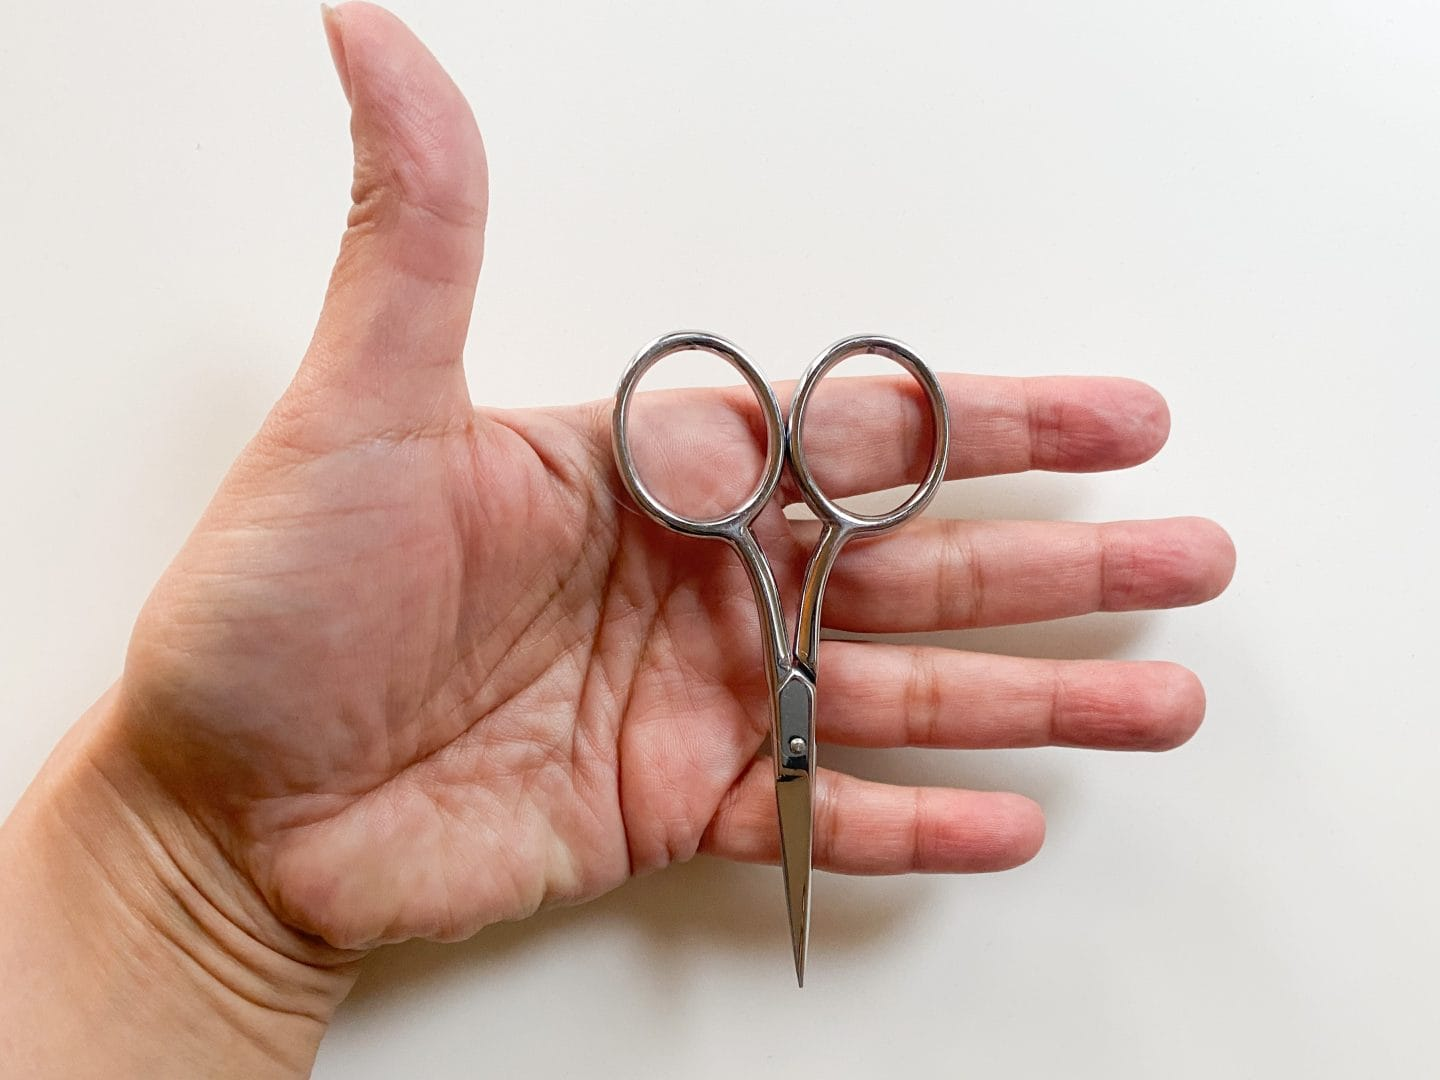 Image of a hand, palm up and open, where a pair of small embroidery scissors rests